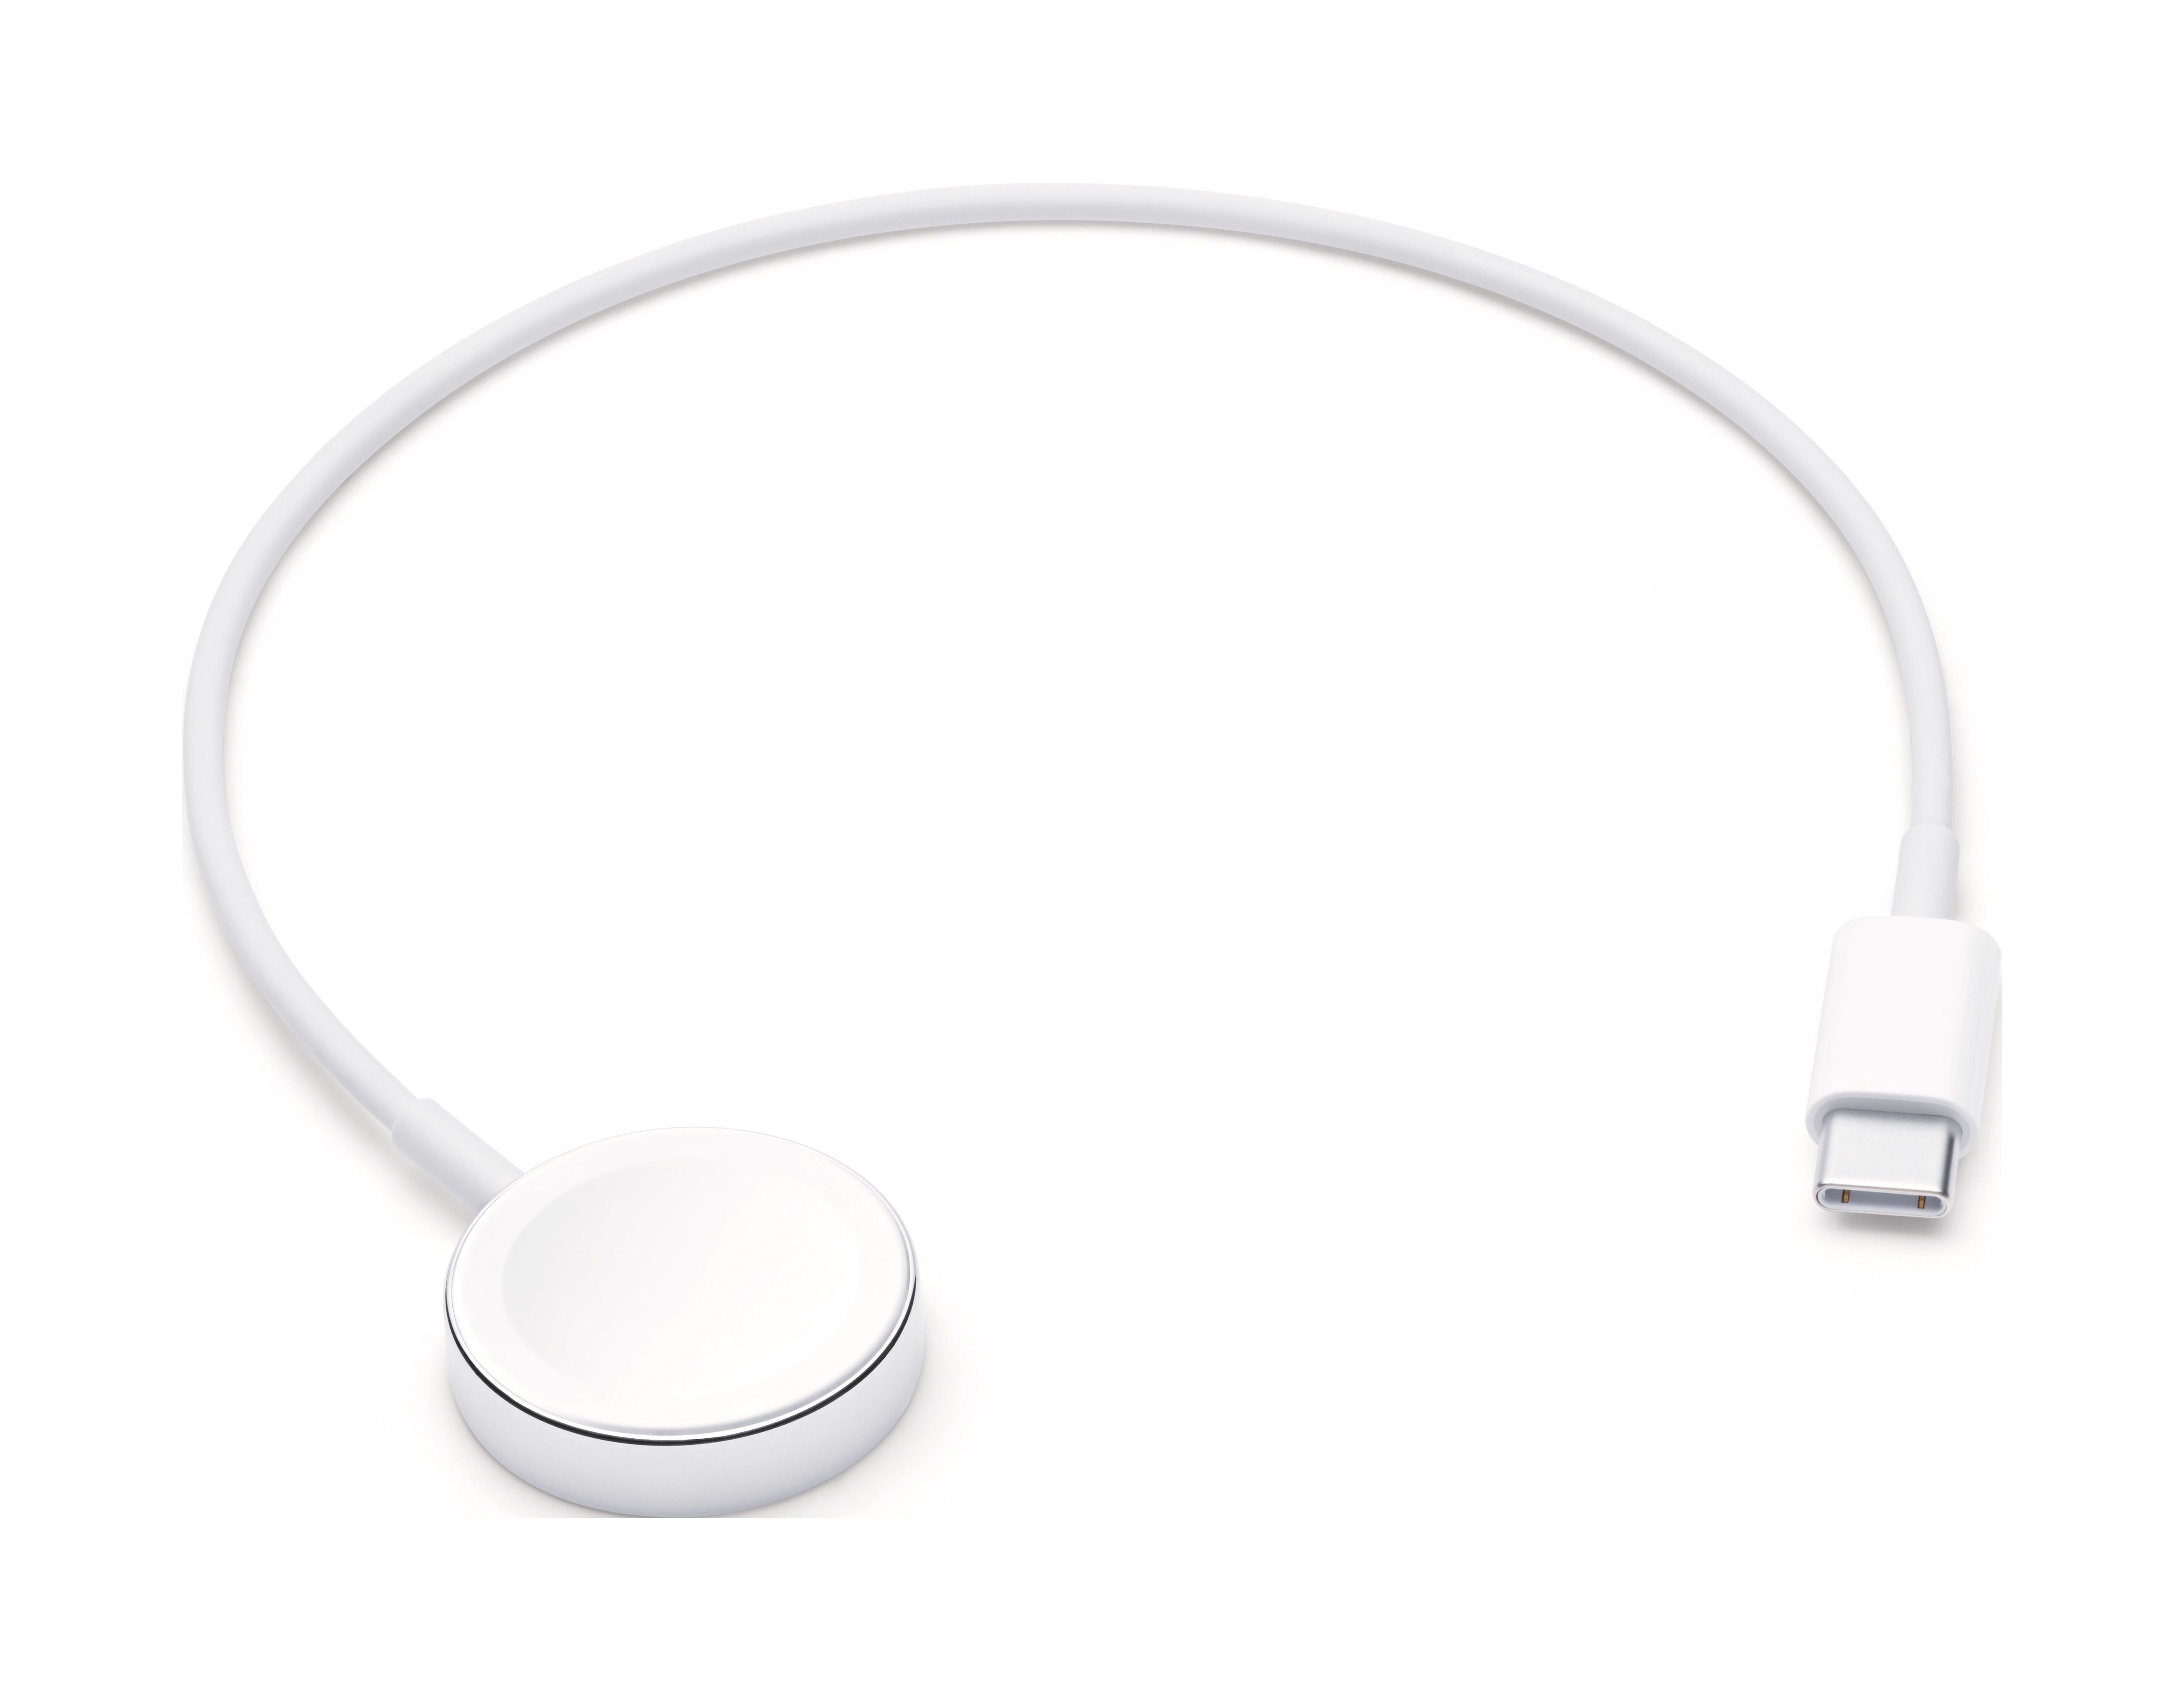 Apple Watch Magnetic Charger to USB-C Cable (0.3m) at Small Dog Electronics